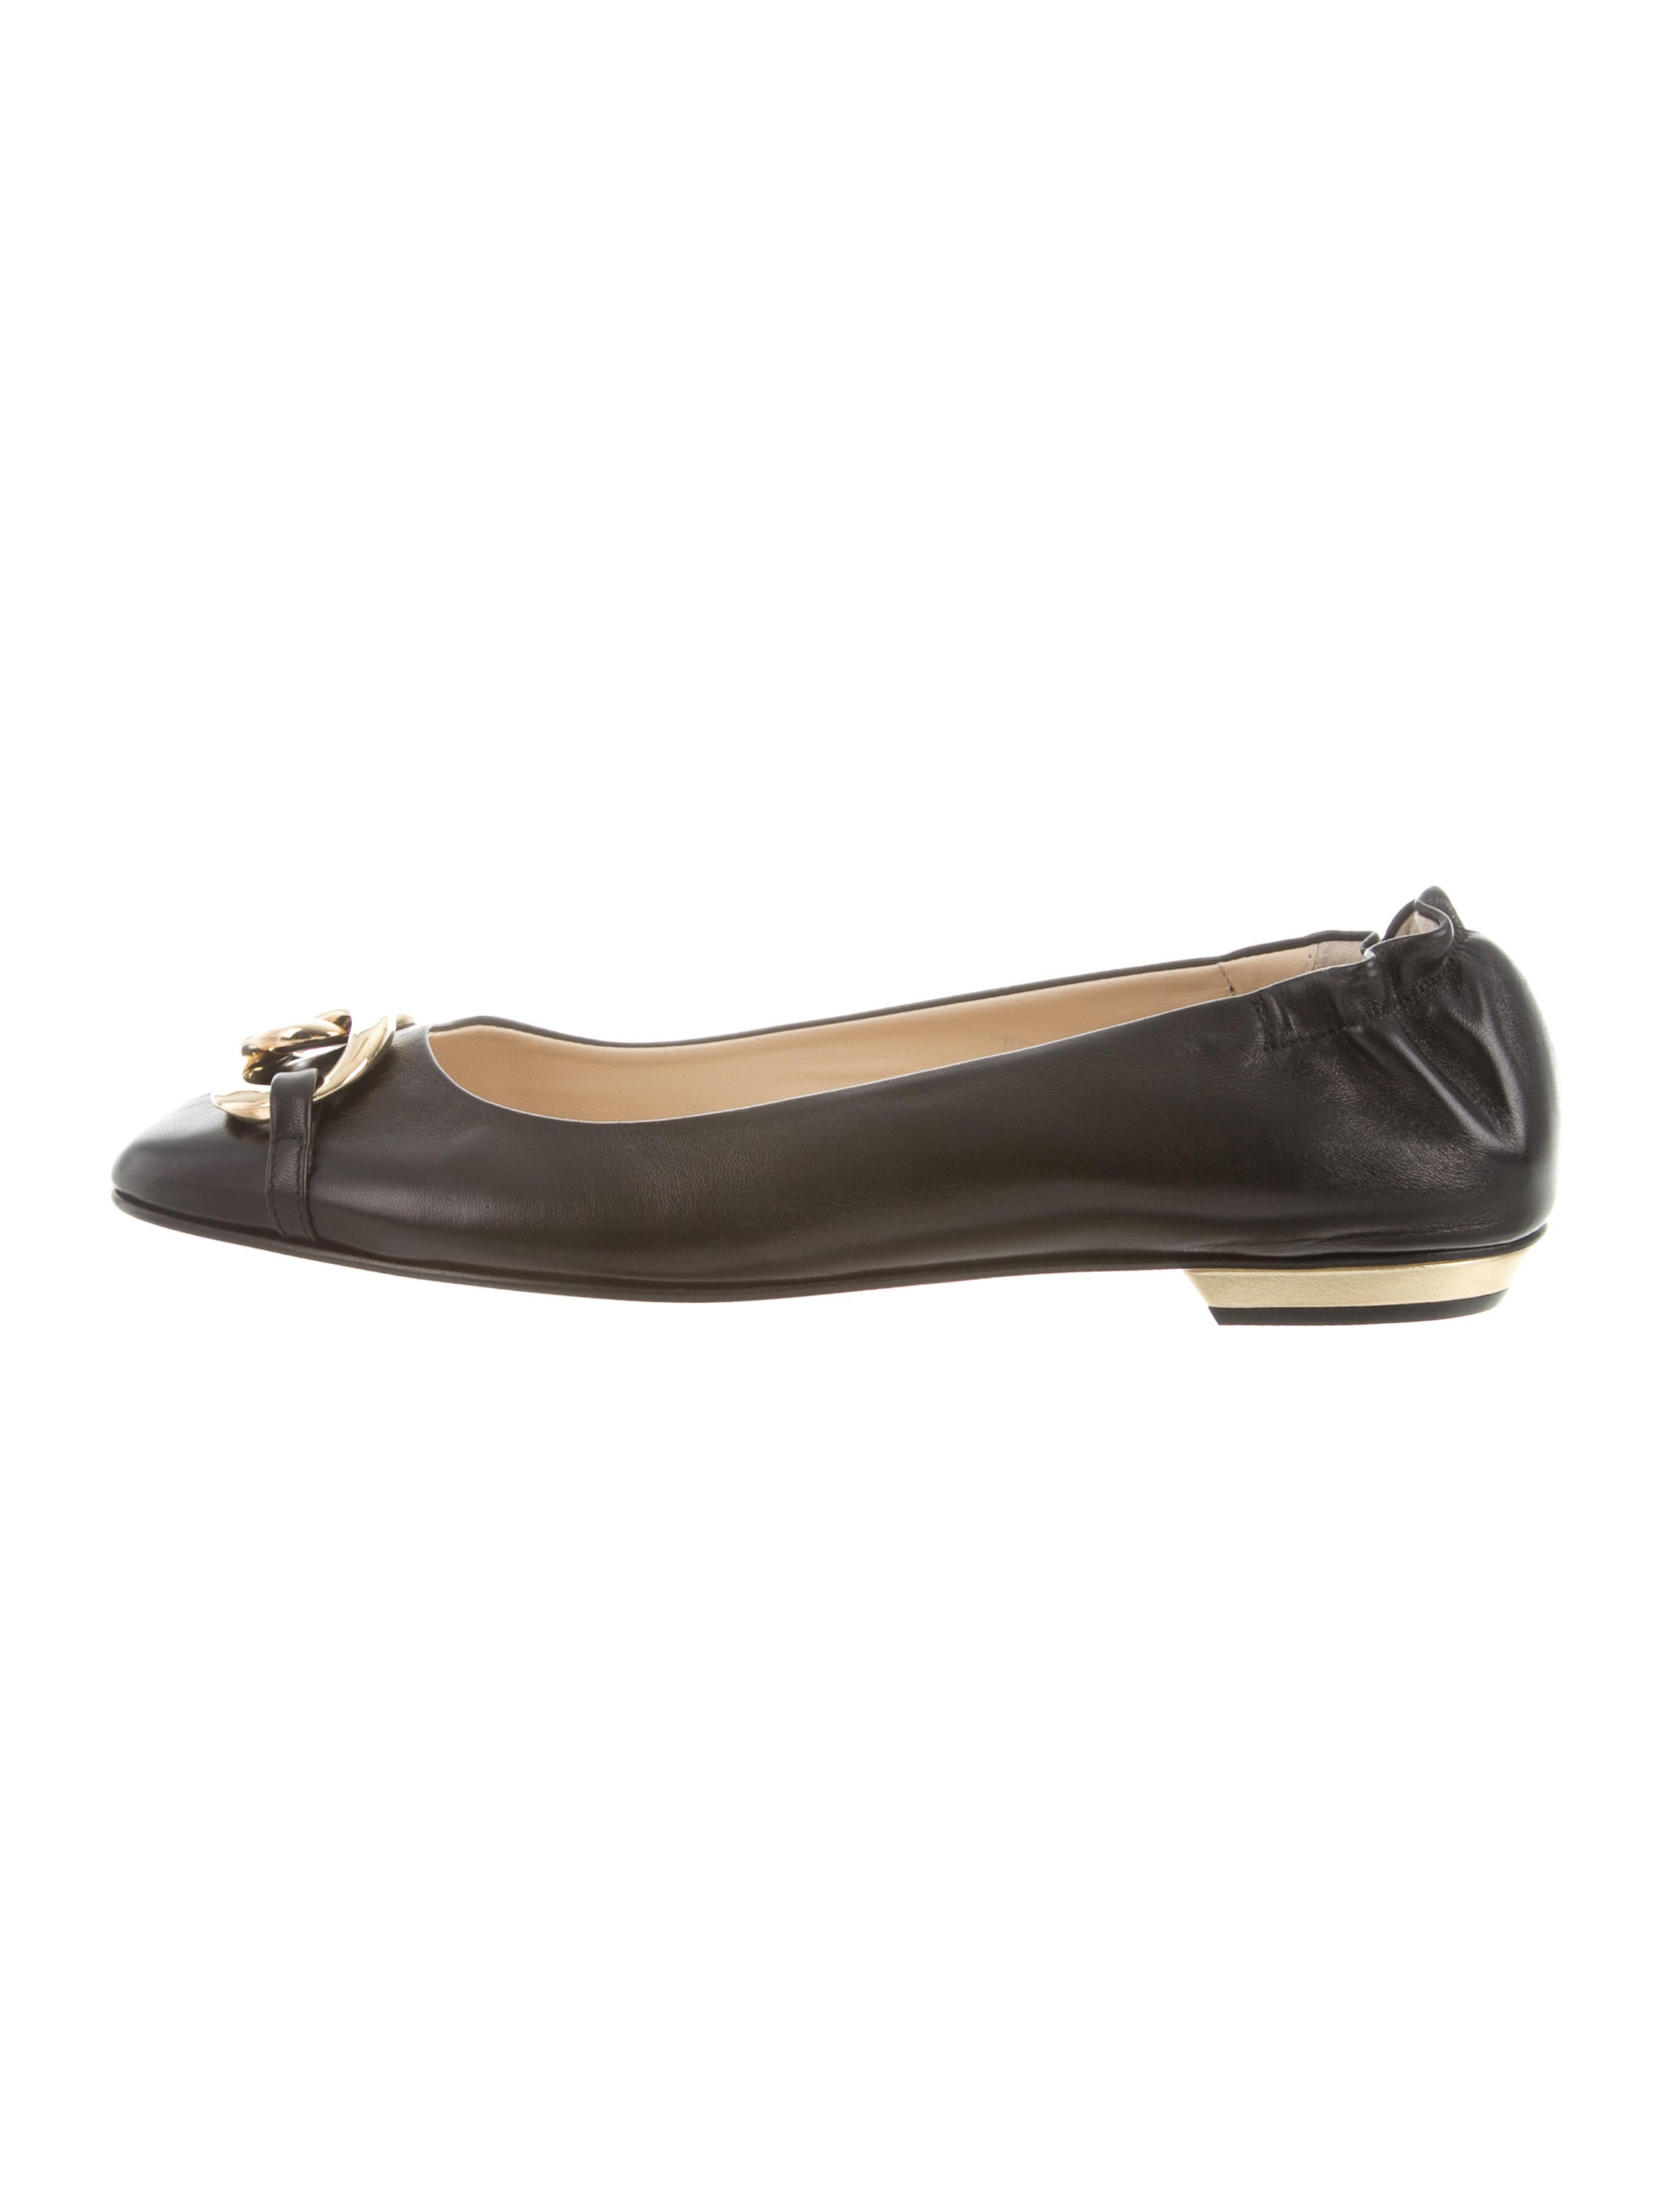 Escada Leather Chain-Link Flats buy cheap collections clearance limited edition LHMECvcsXm